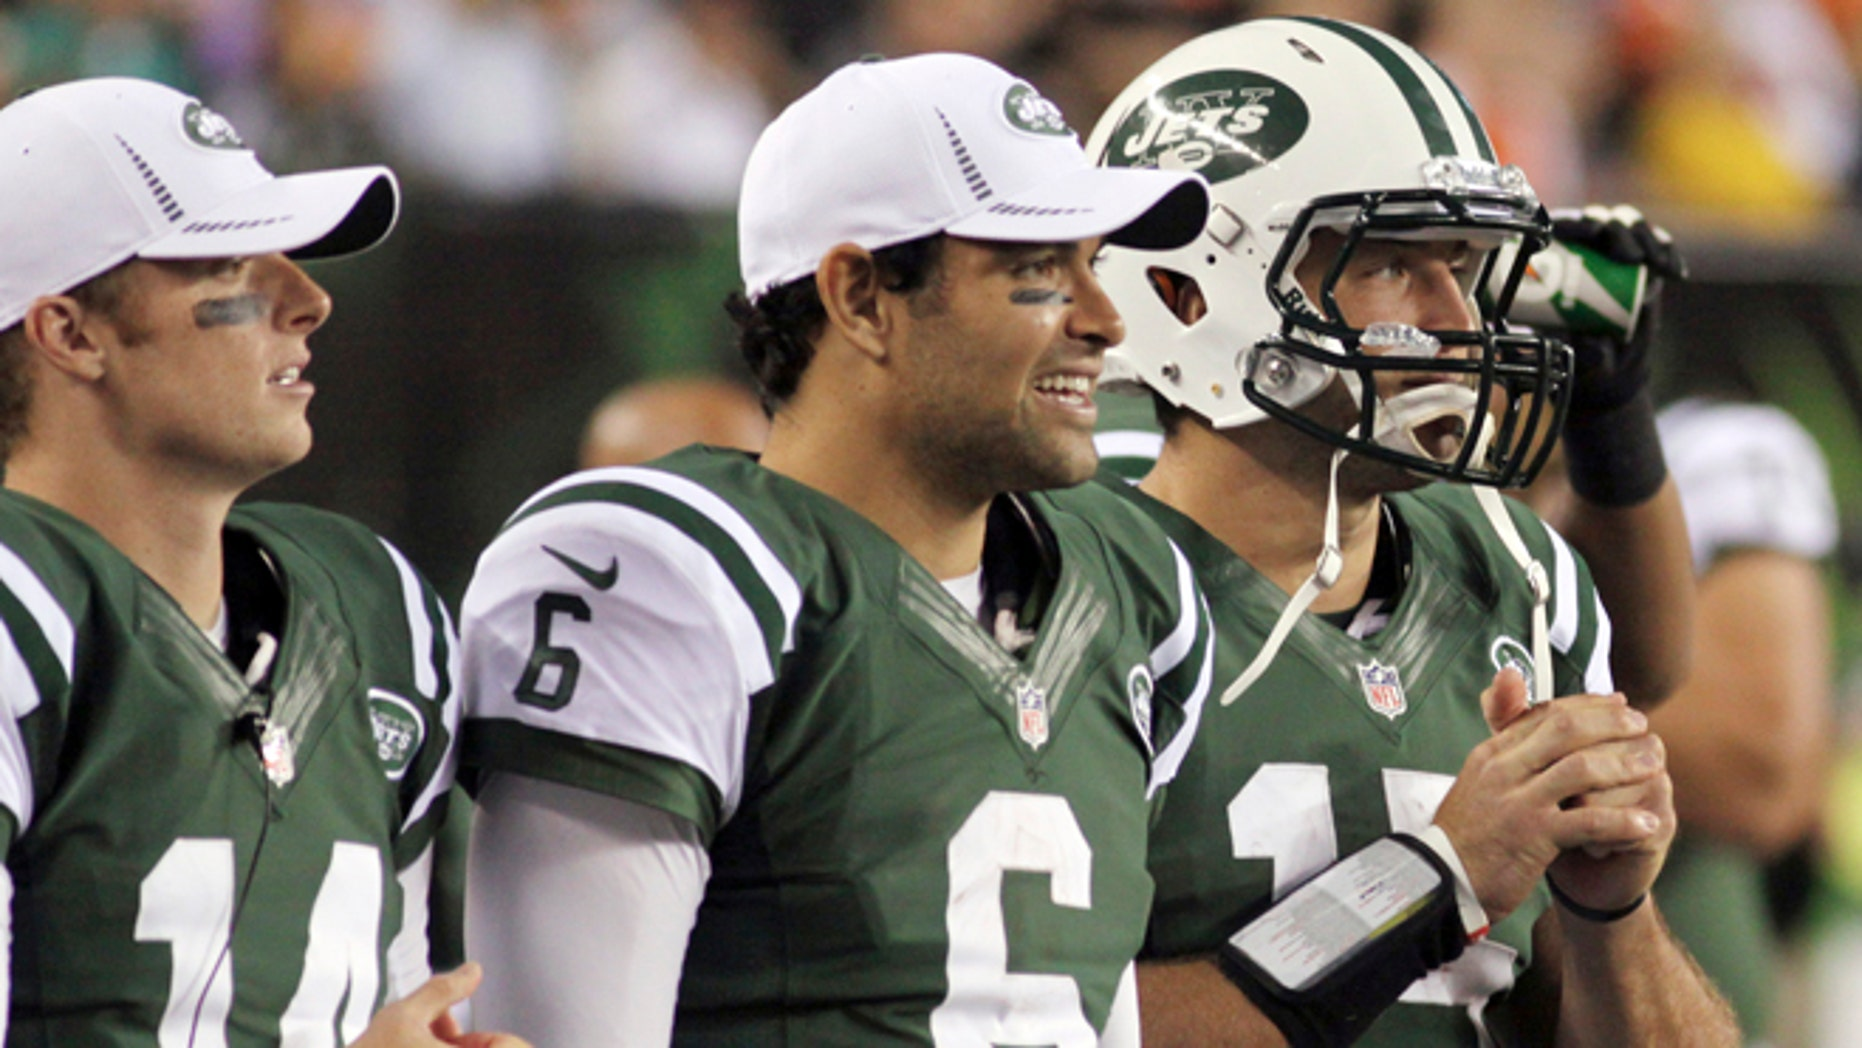 FILE - In this Aug. 10, 2012, file photo, New York Jets quarterbacks, from left, Greg McElroy, Mark Sanchez and Tim Tebow watch from the sidelines during the first half of a preseason NFL football game against the Cincinnati Bengals in Cincinnati. Jets coach Rex Ryan gathered his three quarterbacks Wednesday morning and told them he had made up his mind. It will be Sanchez and not McElroy orTebow on Sunday when the Jets take on the Jaguars in Jacksonville.(AP Photo/Tom Uhlman, File)